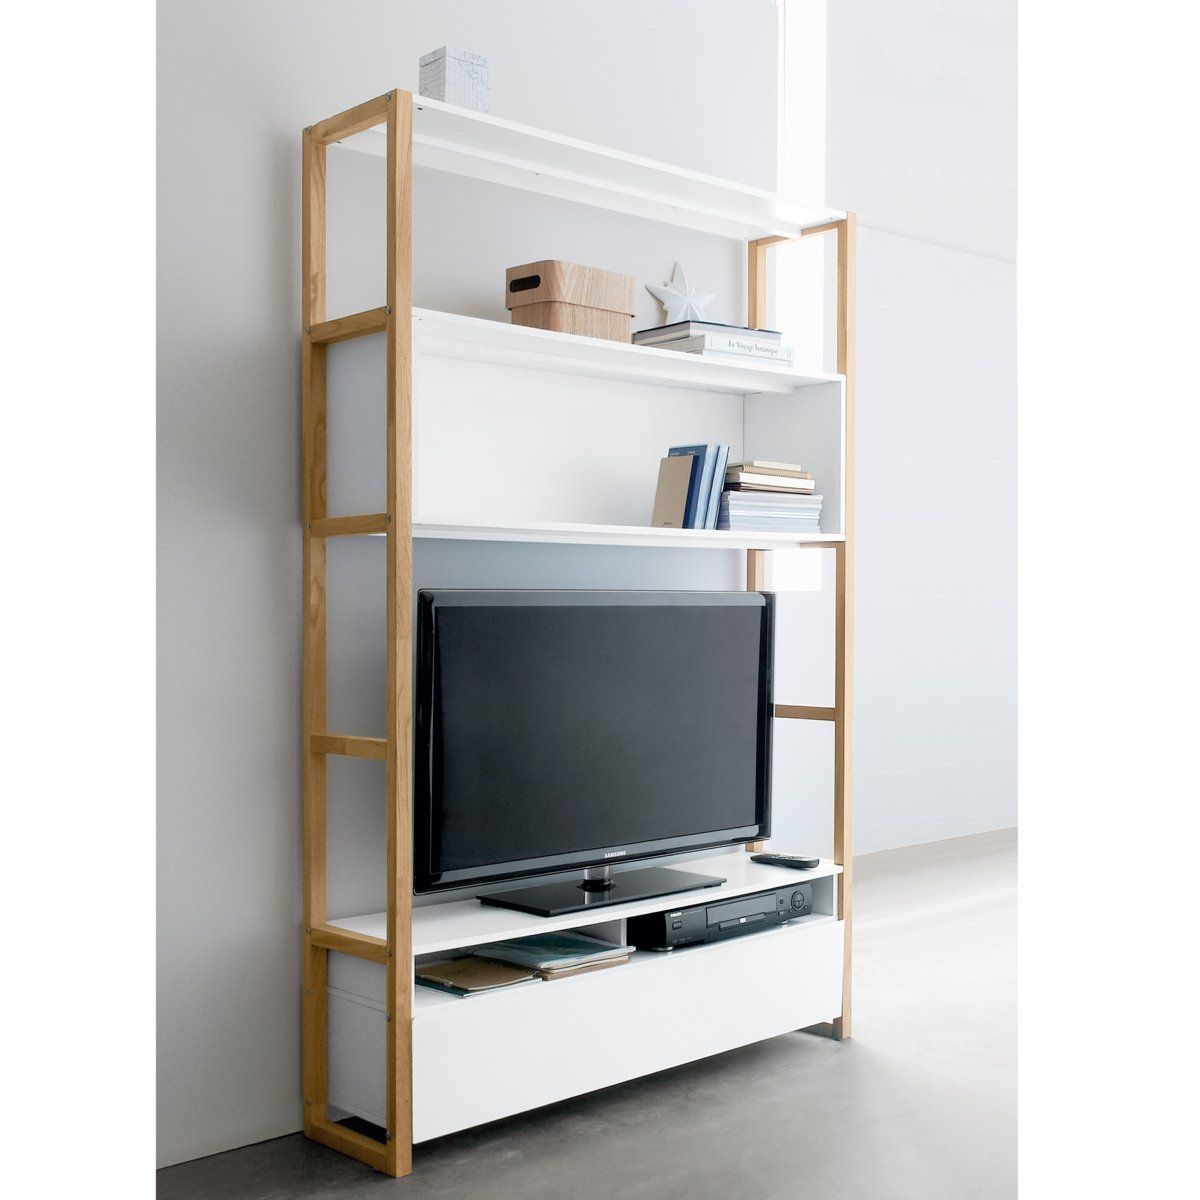 Etagere pour tv topiwall for Meuble tv etagere